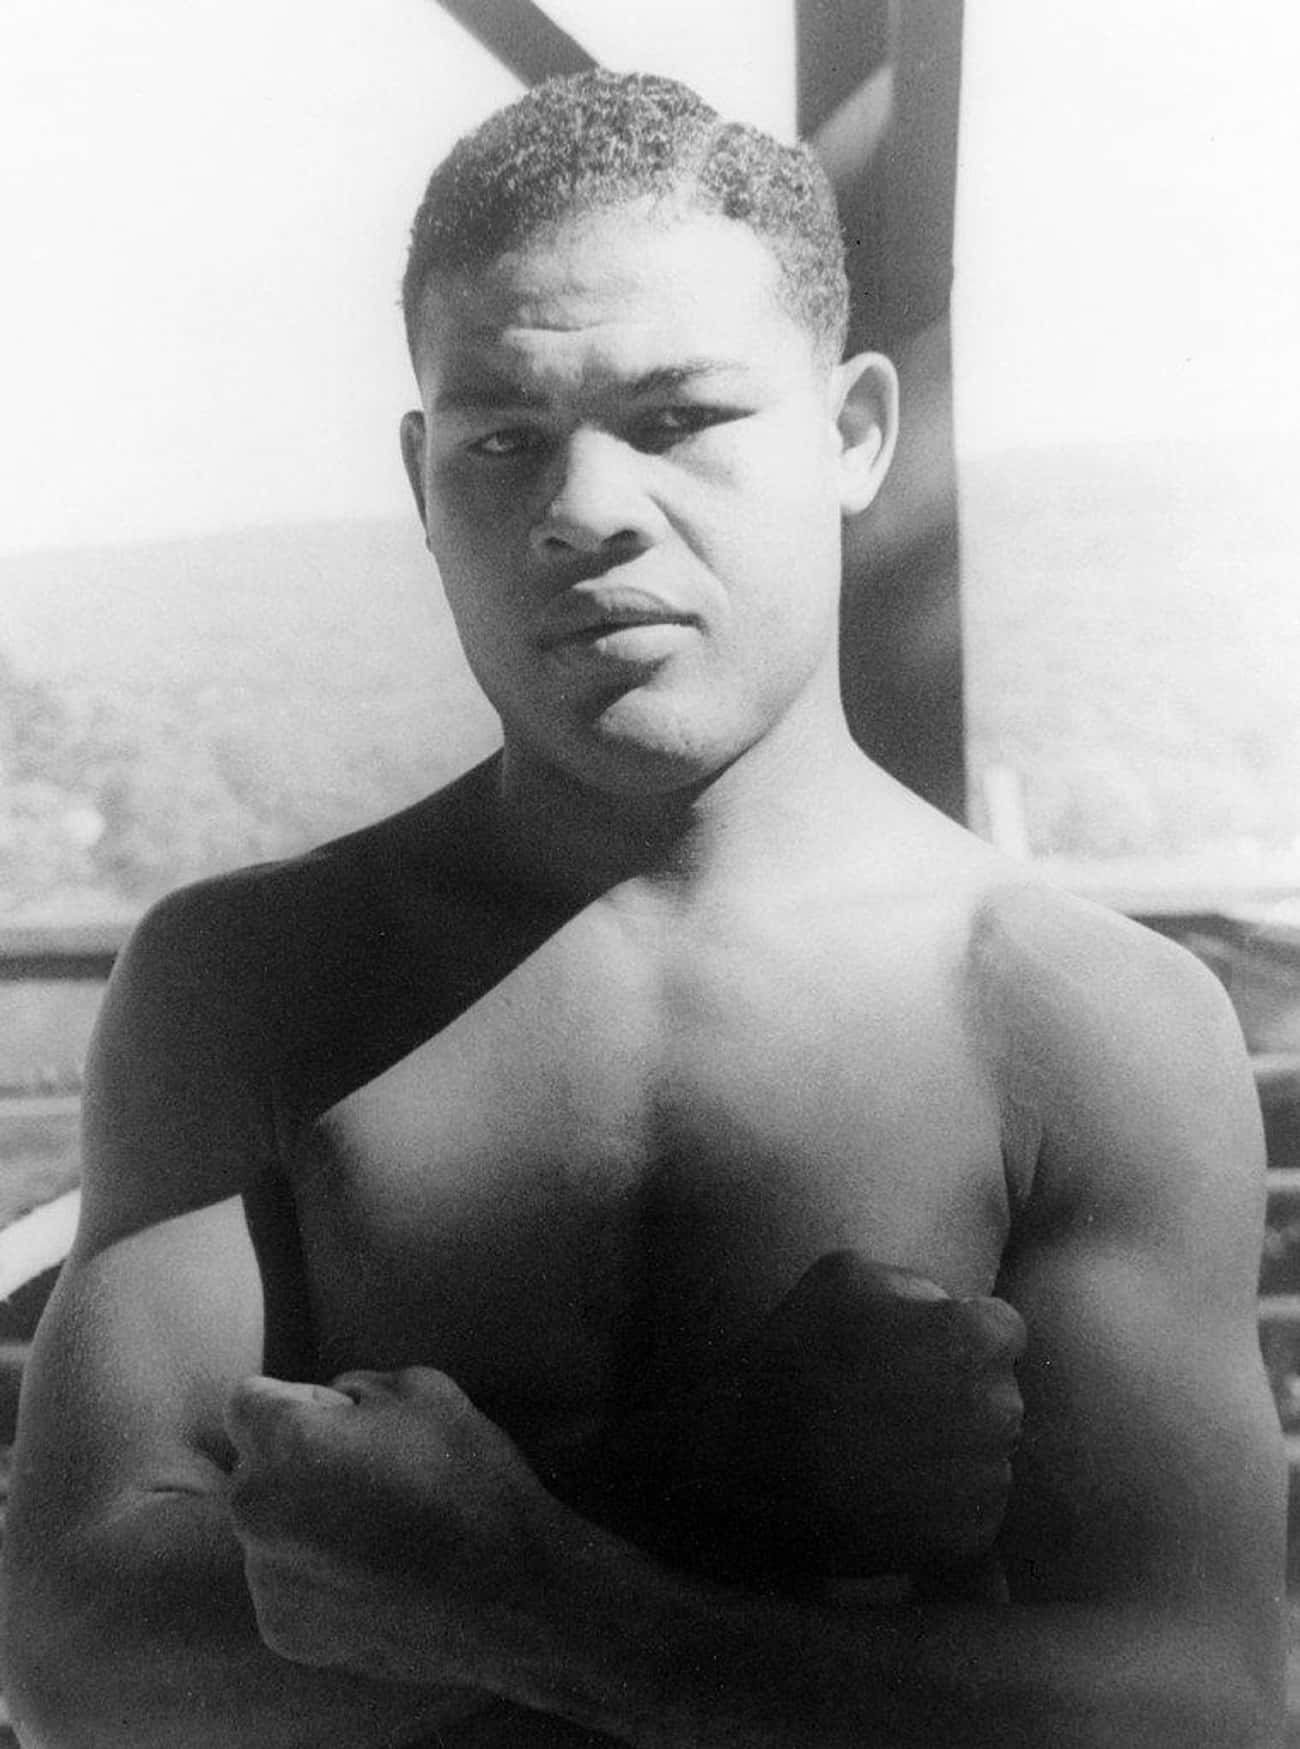 Tax Trouble Left Joe Louis Pen is listed (or ranked) 3 on the list 14 Actors, Authors, Athletes, And Artists (And One Scientist) Who Died Broke